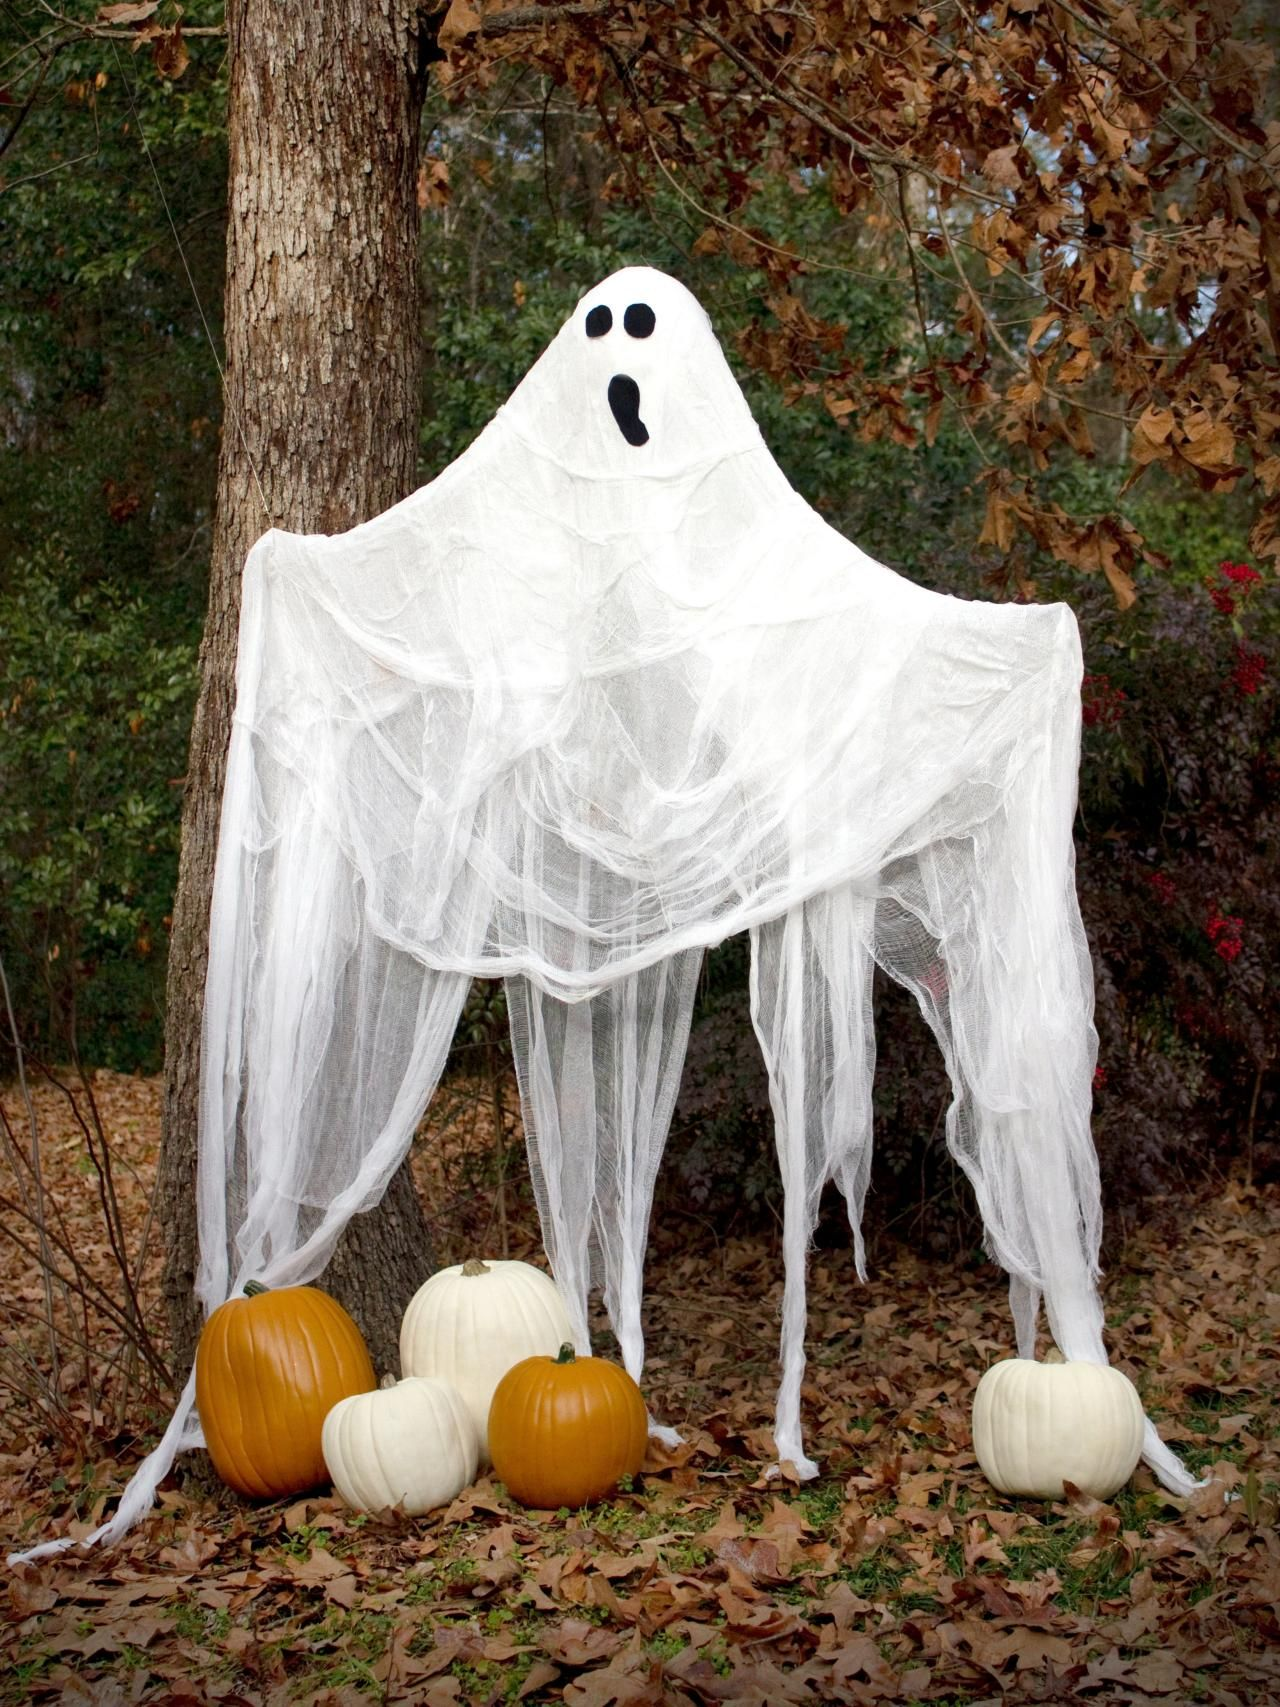 Halloween Decorations Ghosts halloween decorations for camp - Decorating For Halloween